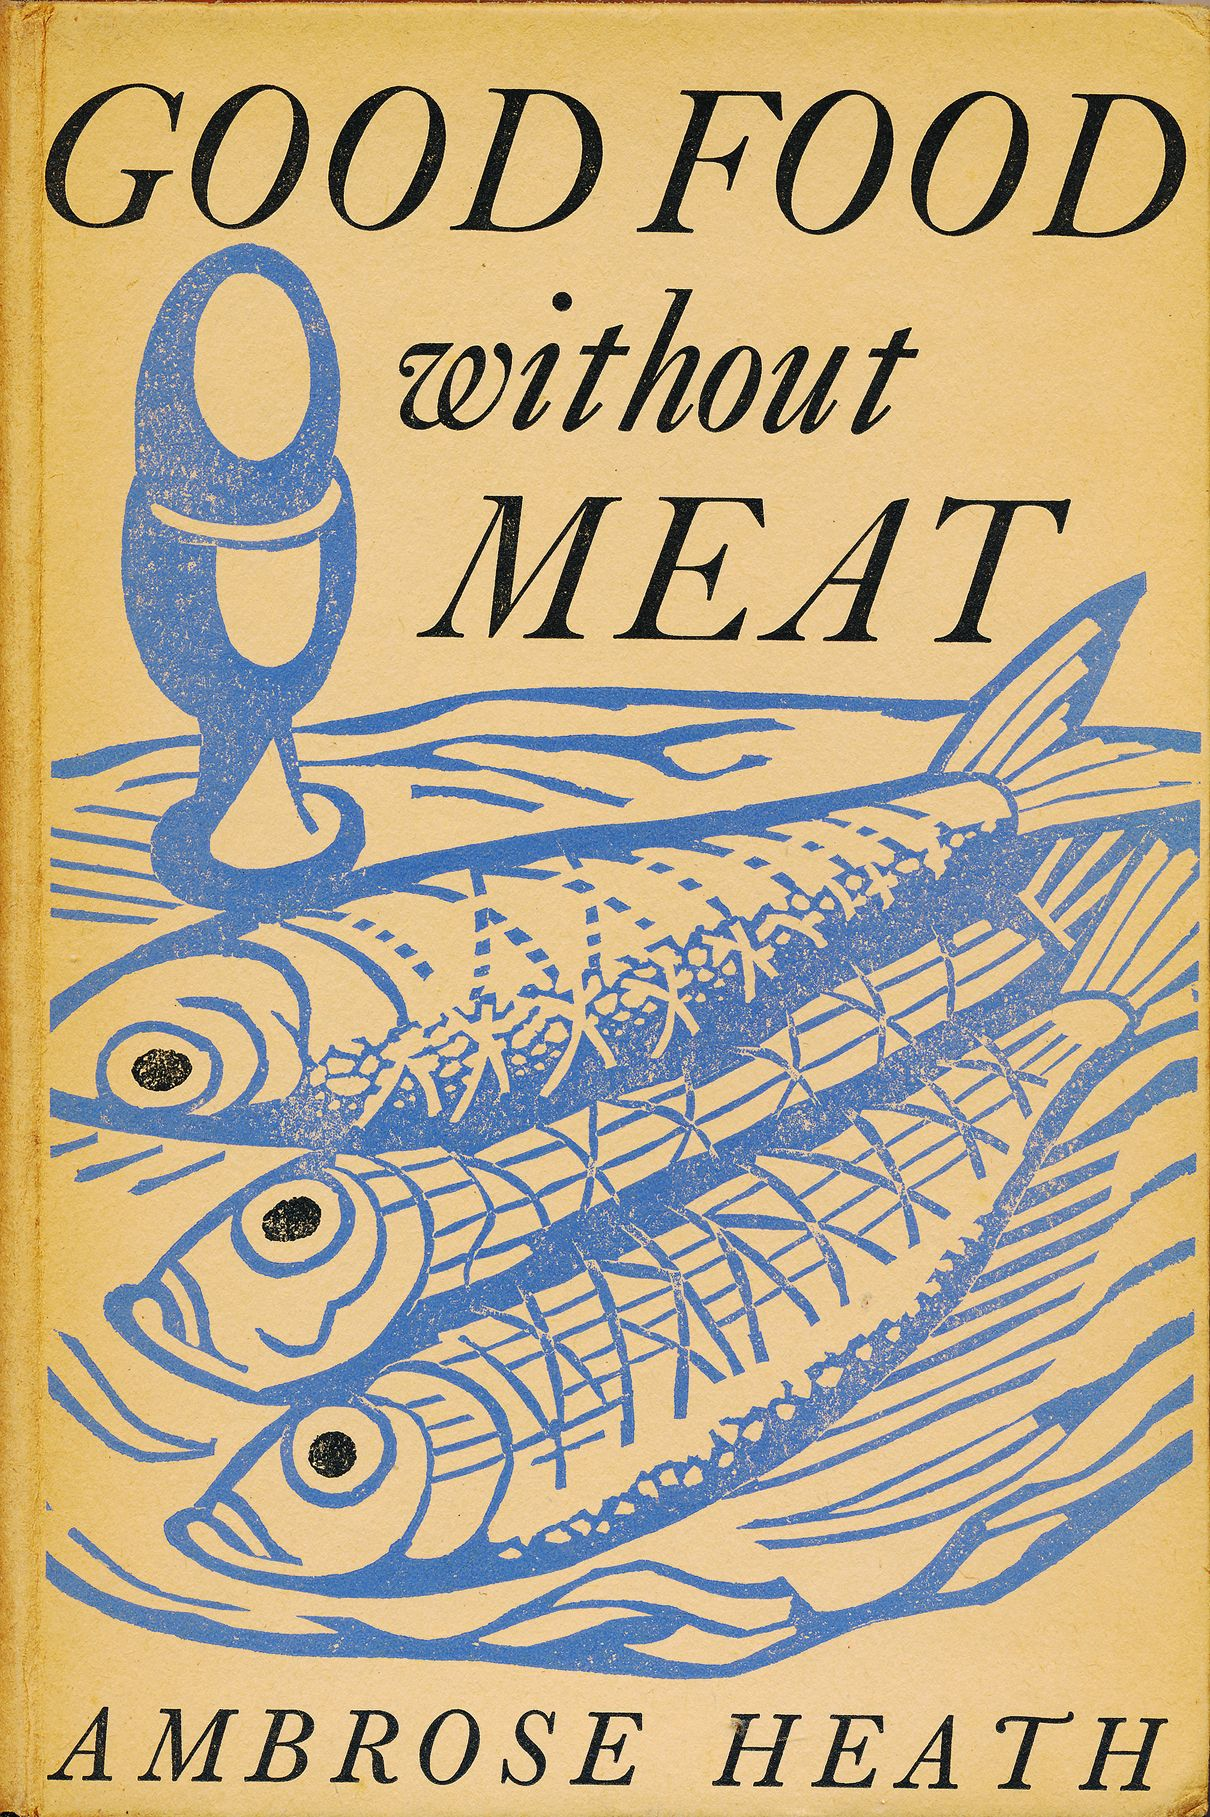 Edward Bawden Linocut design for the cover of Good Food